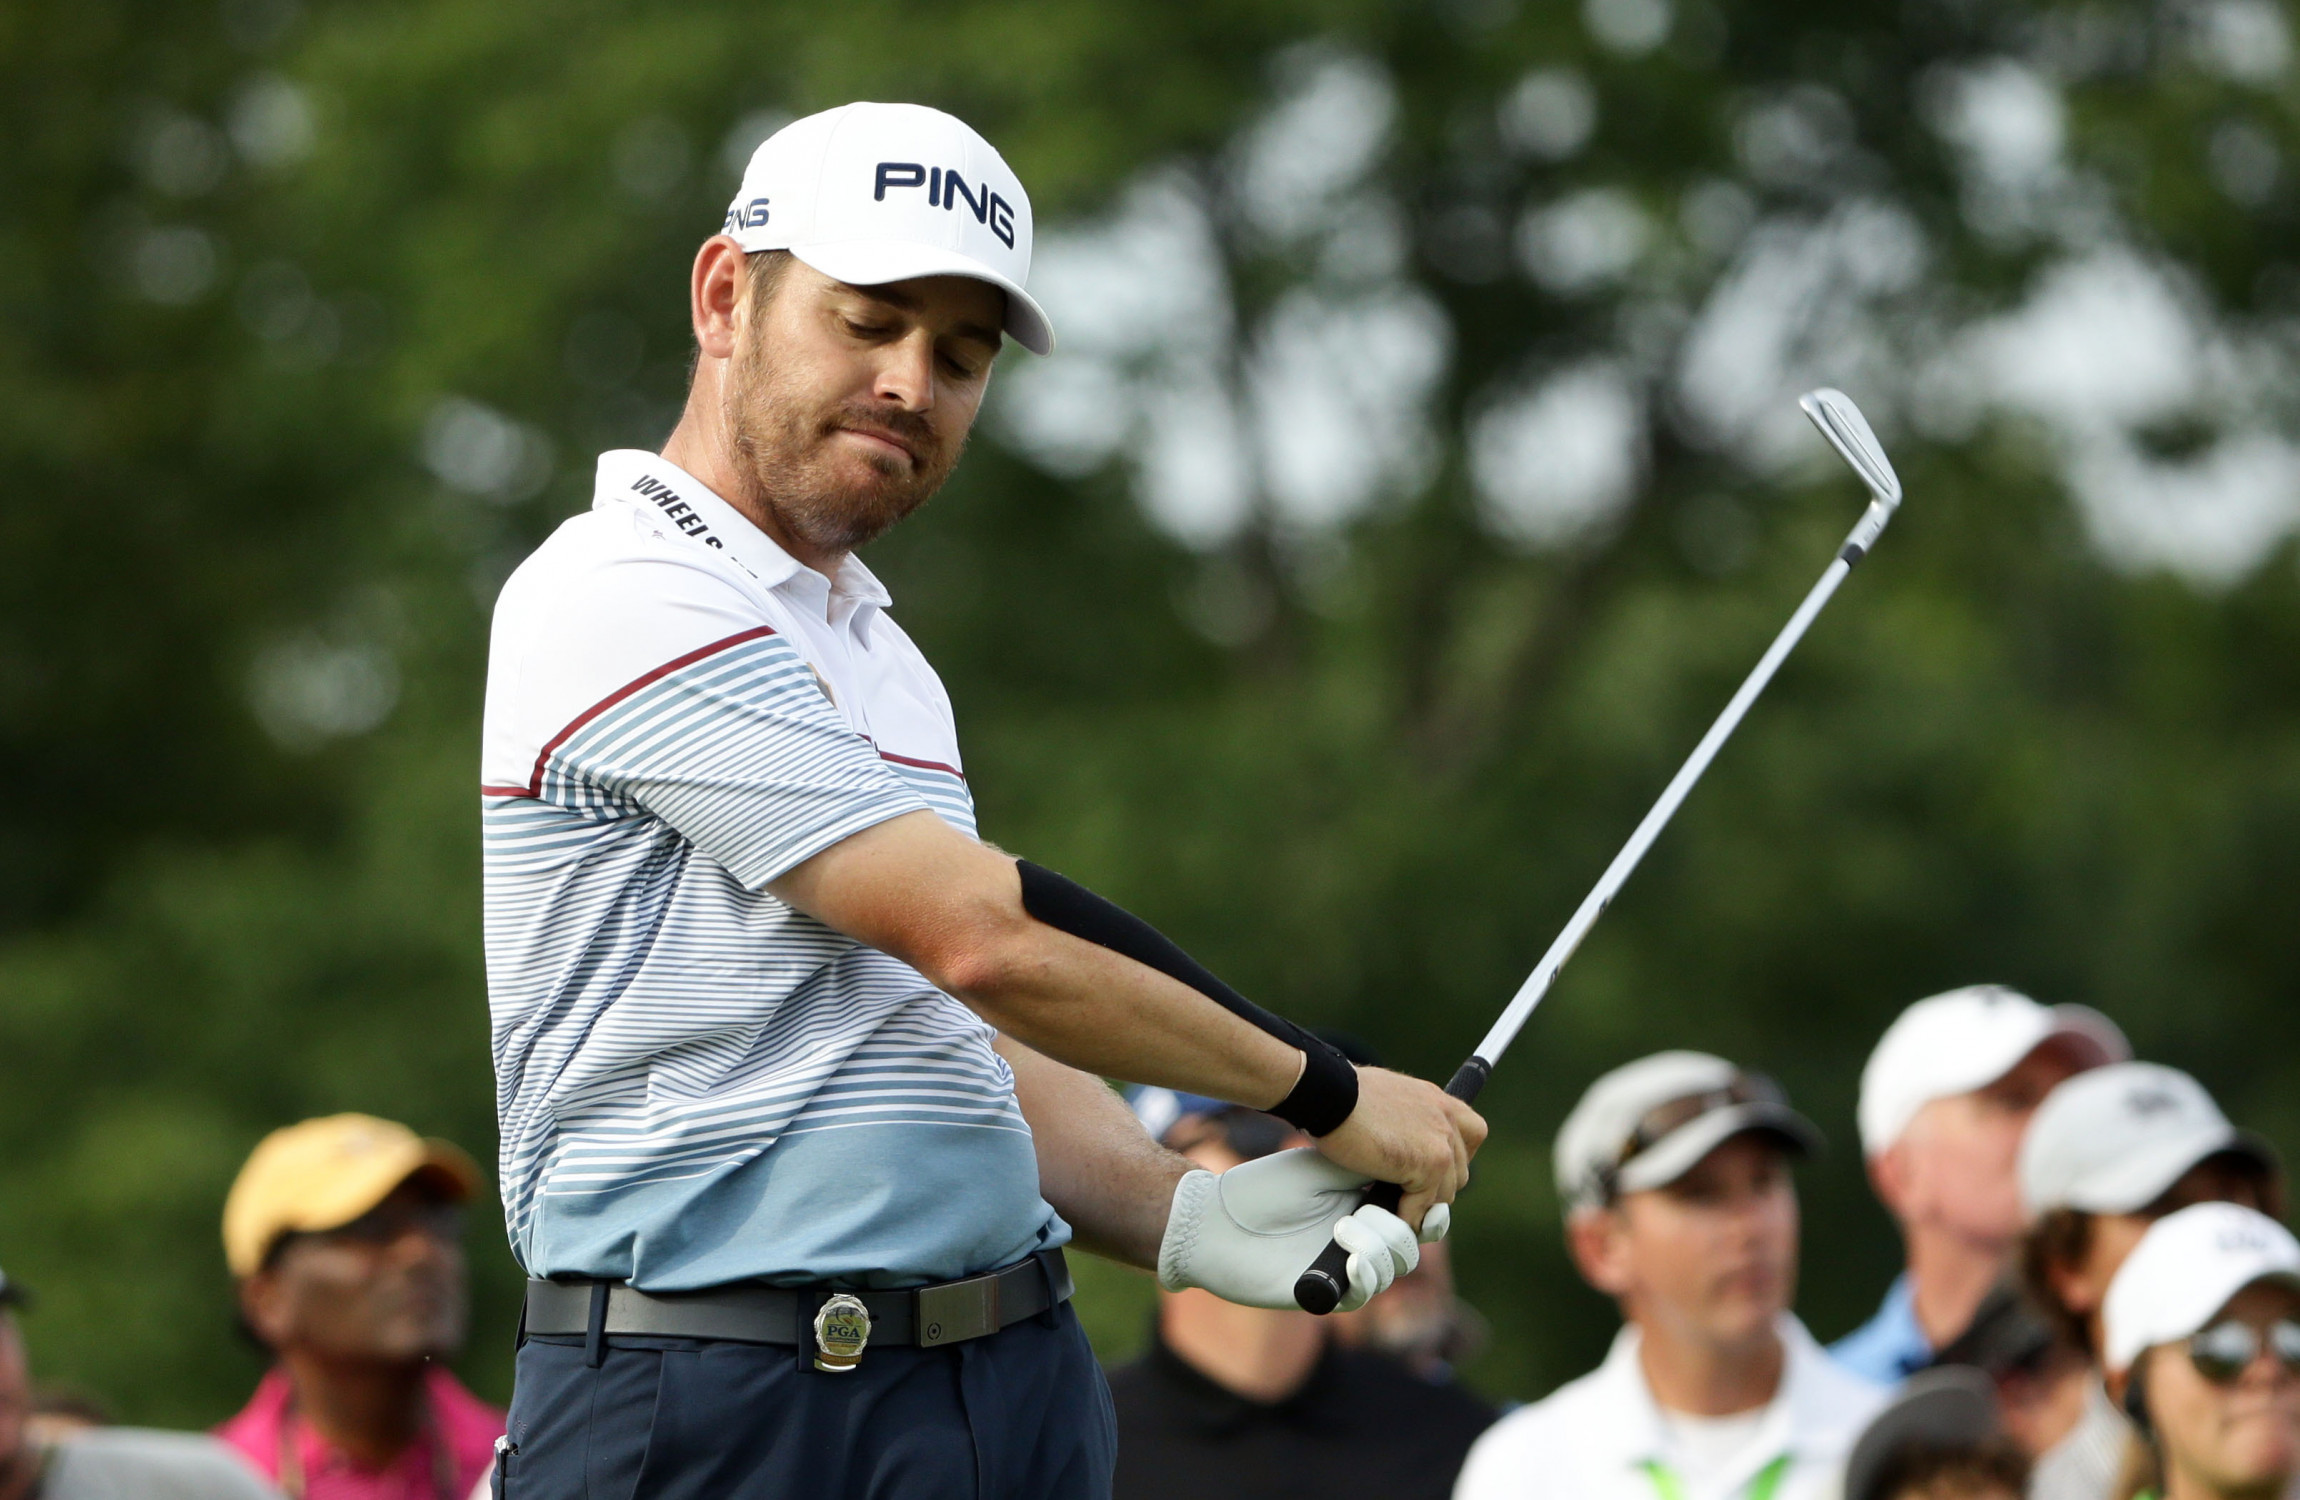 Louis Oosthuizen WDs from Joburg Open because of freak injury